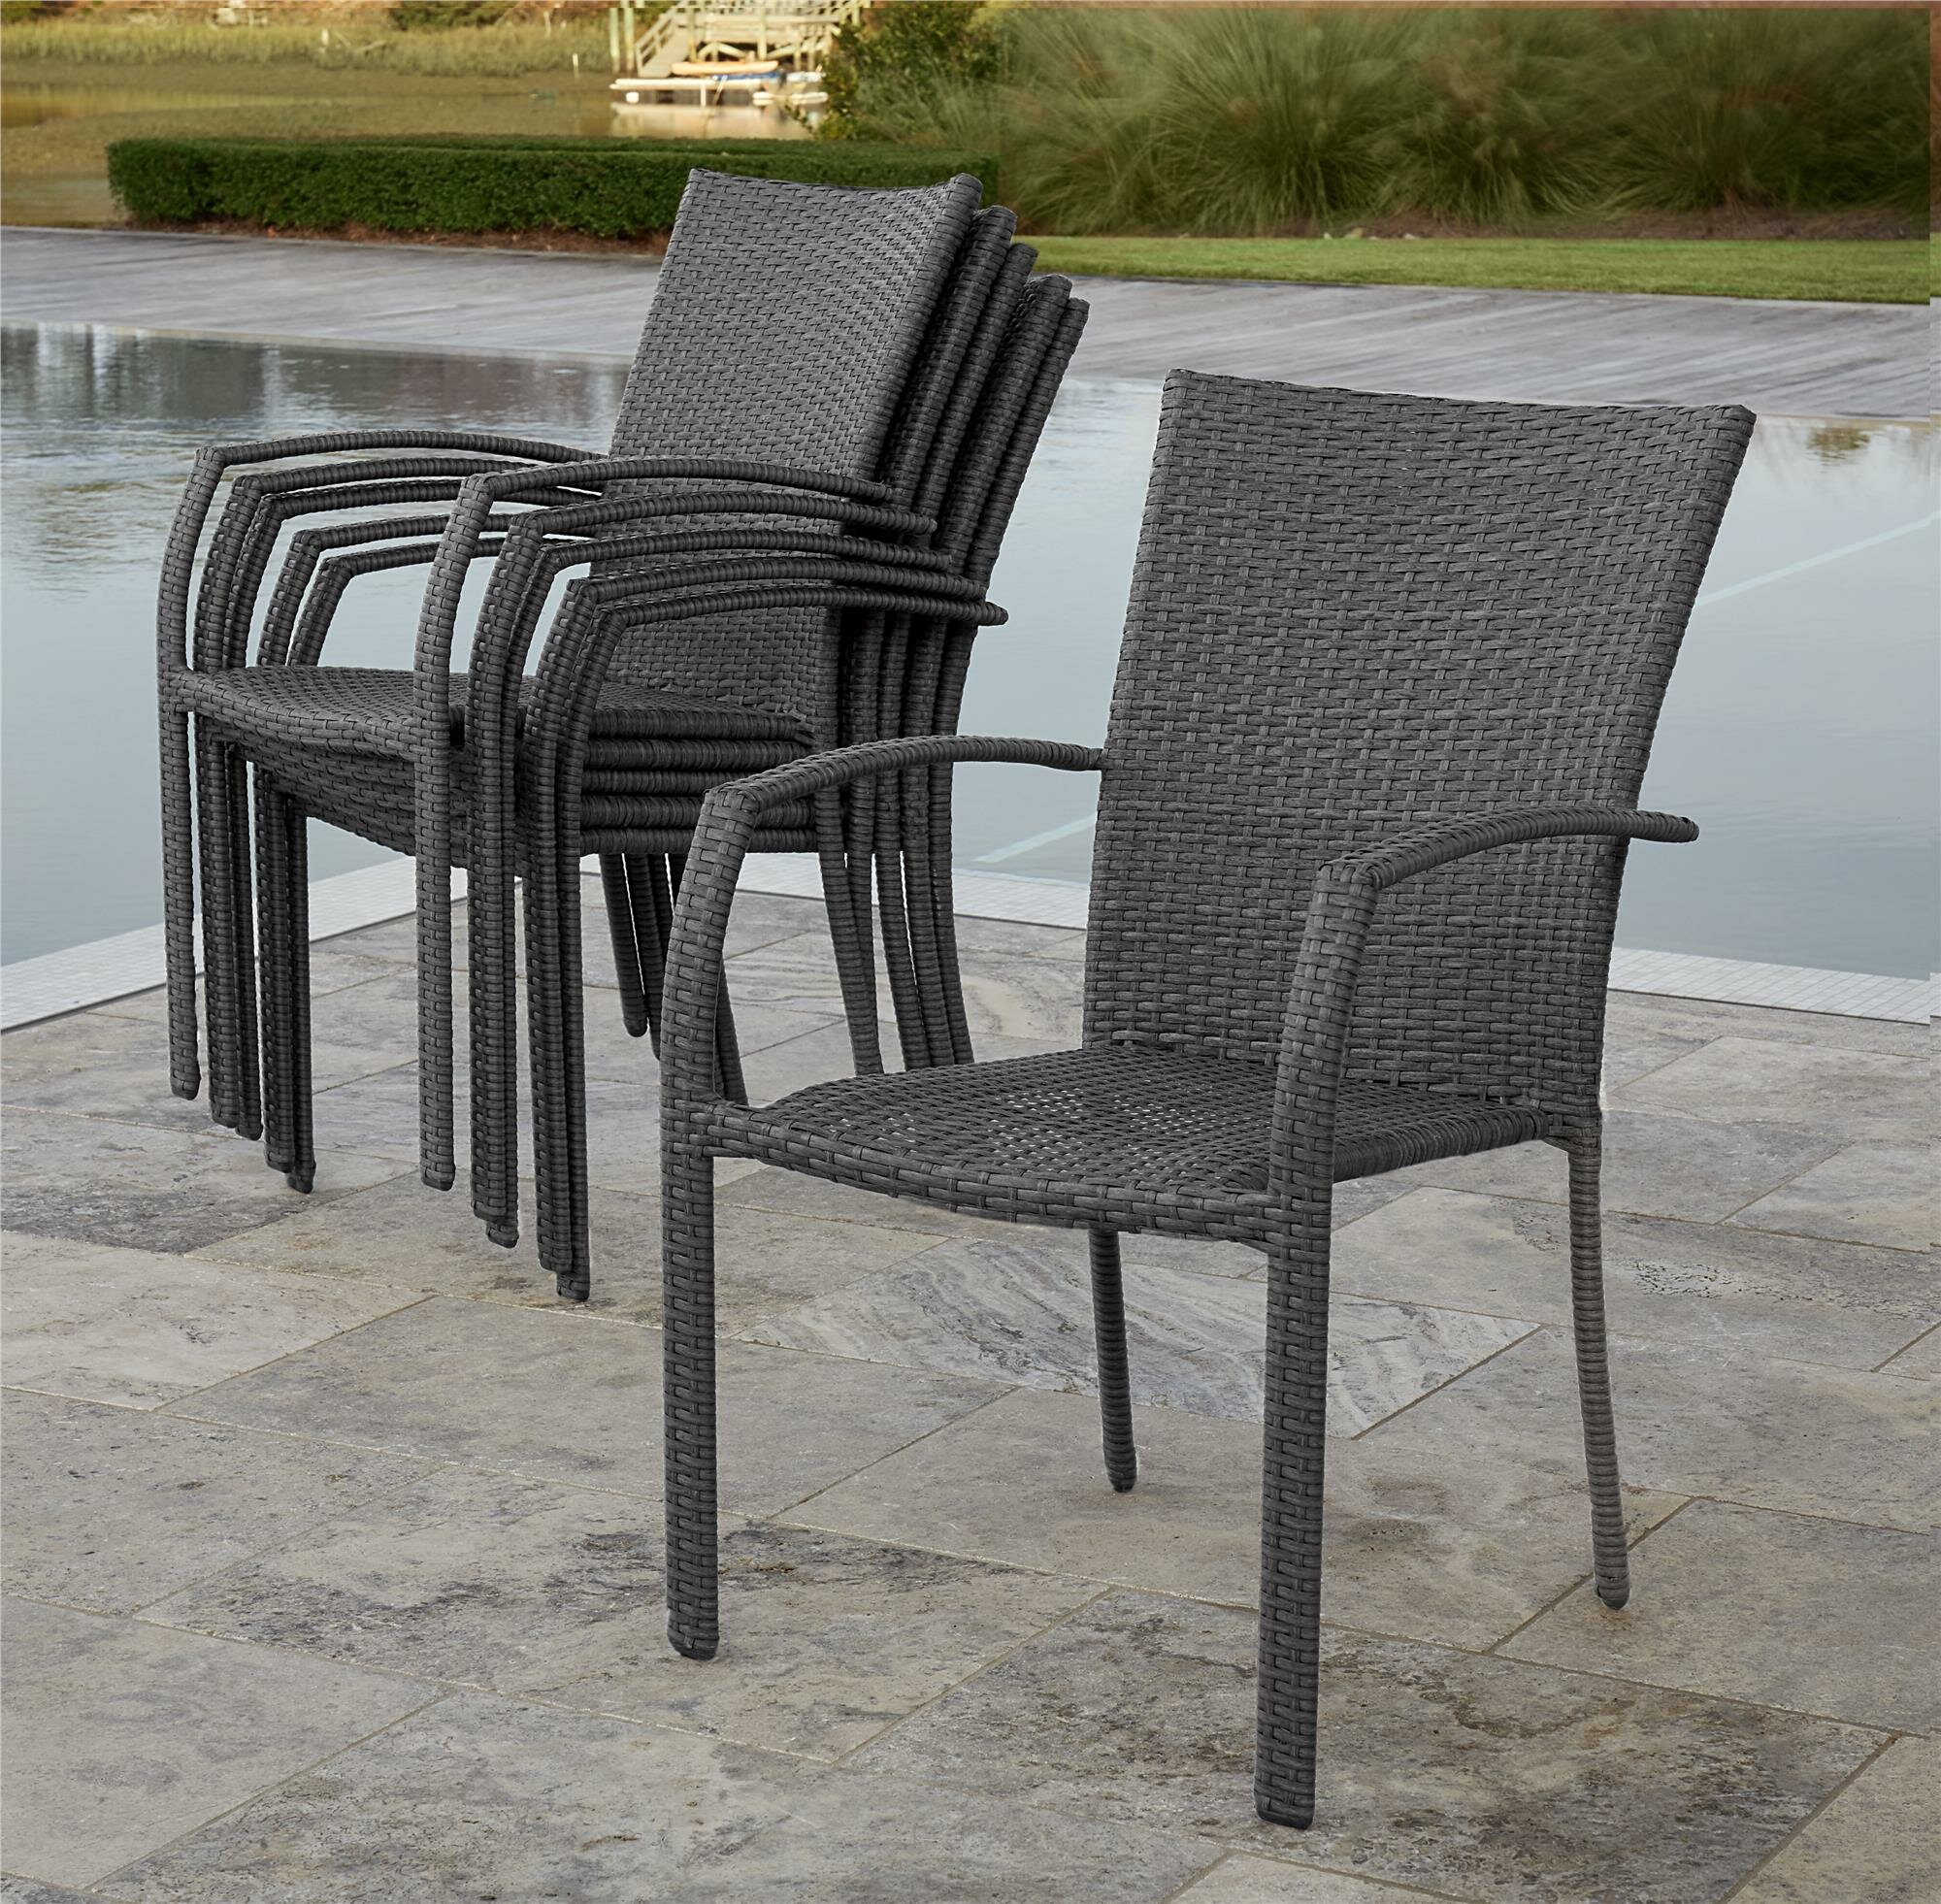 Patio Outdoor Dining Chairs You Ll Love In 2021 Wayfair